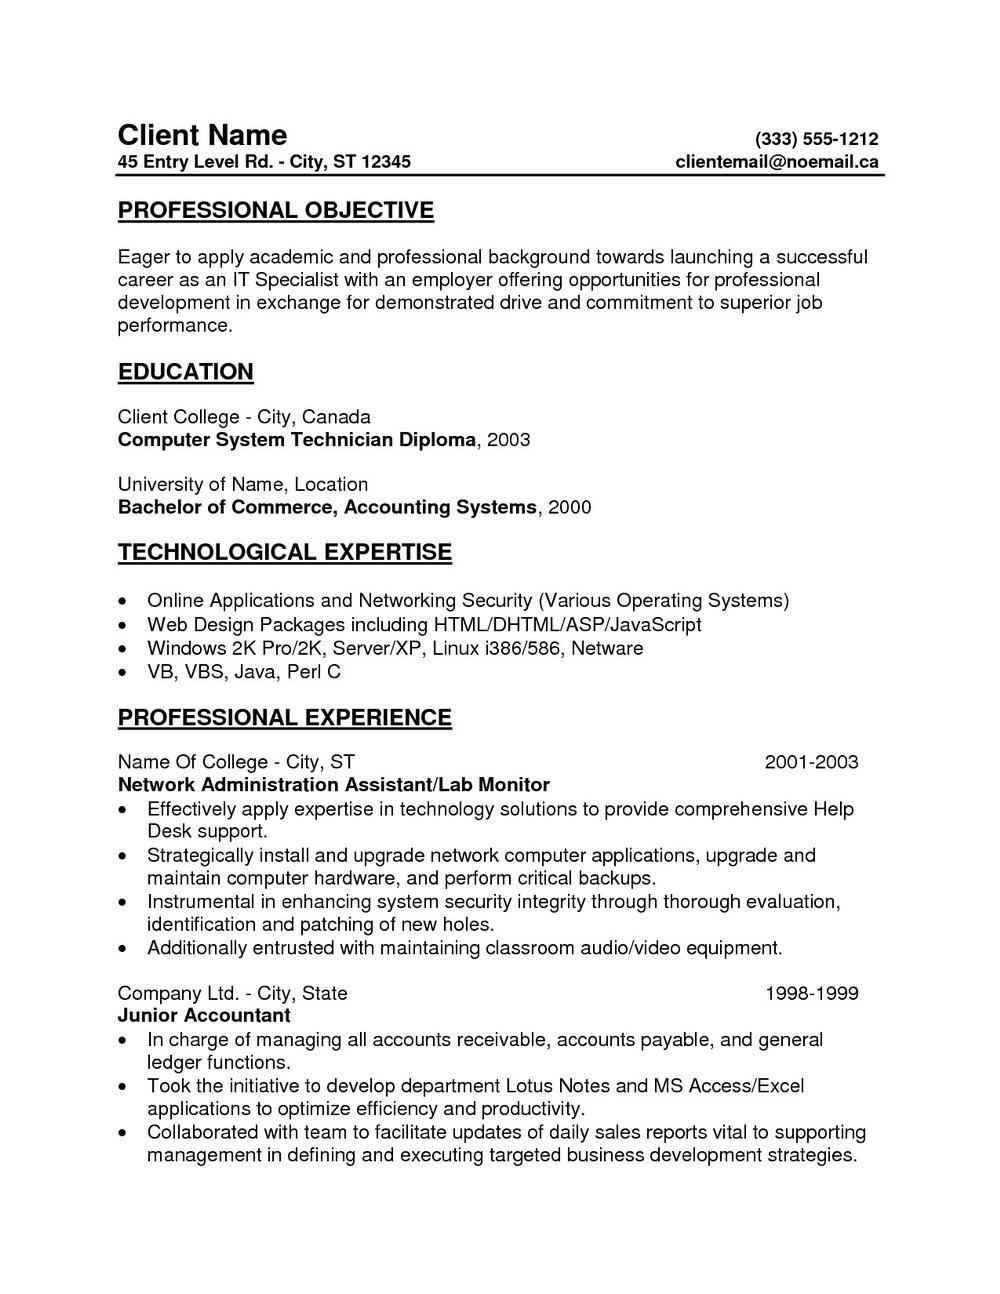 New Resume Format For Freshers 2017